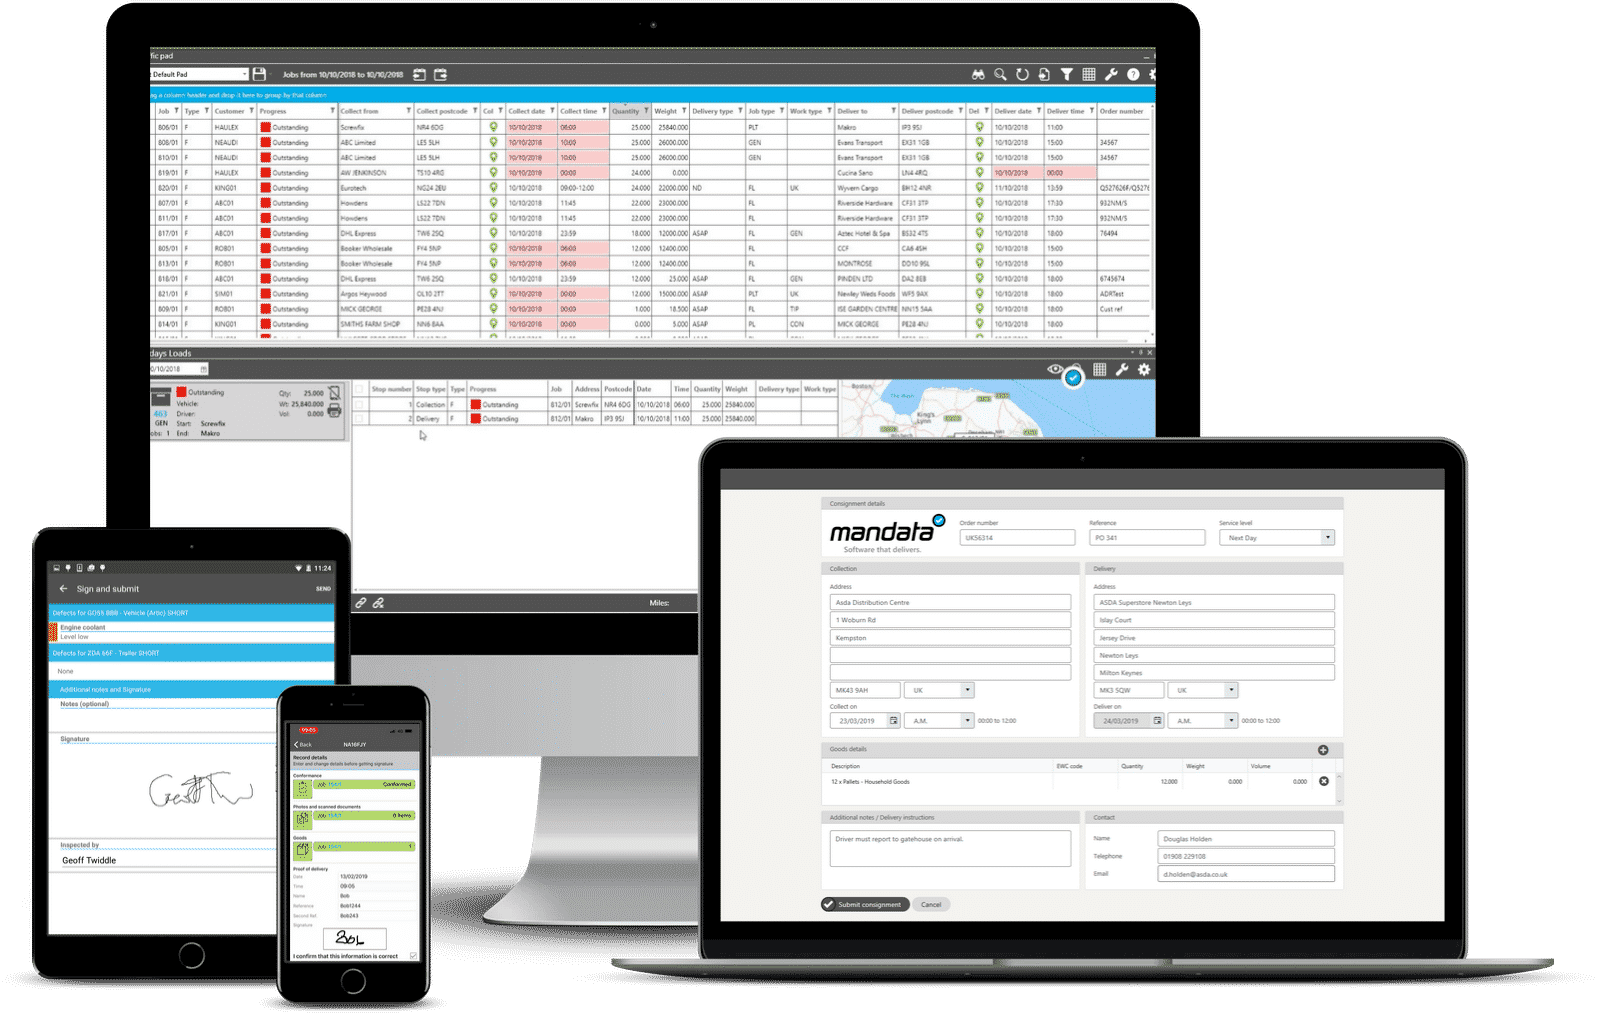 One integrated transport management system from Mandata